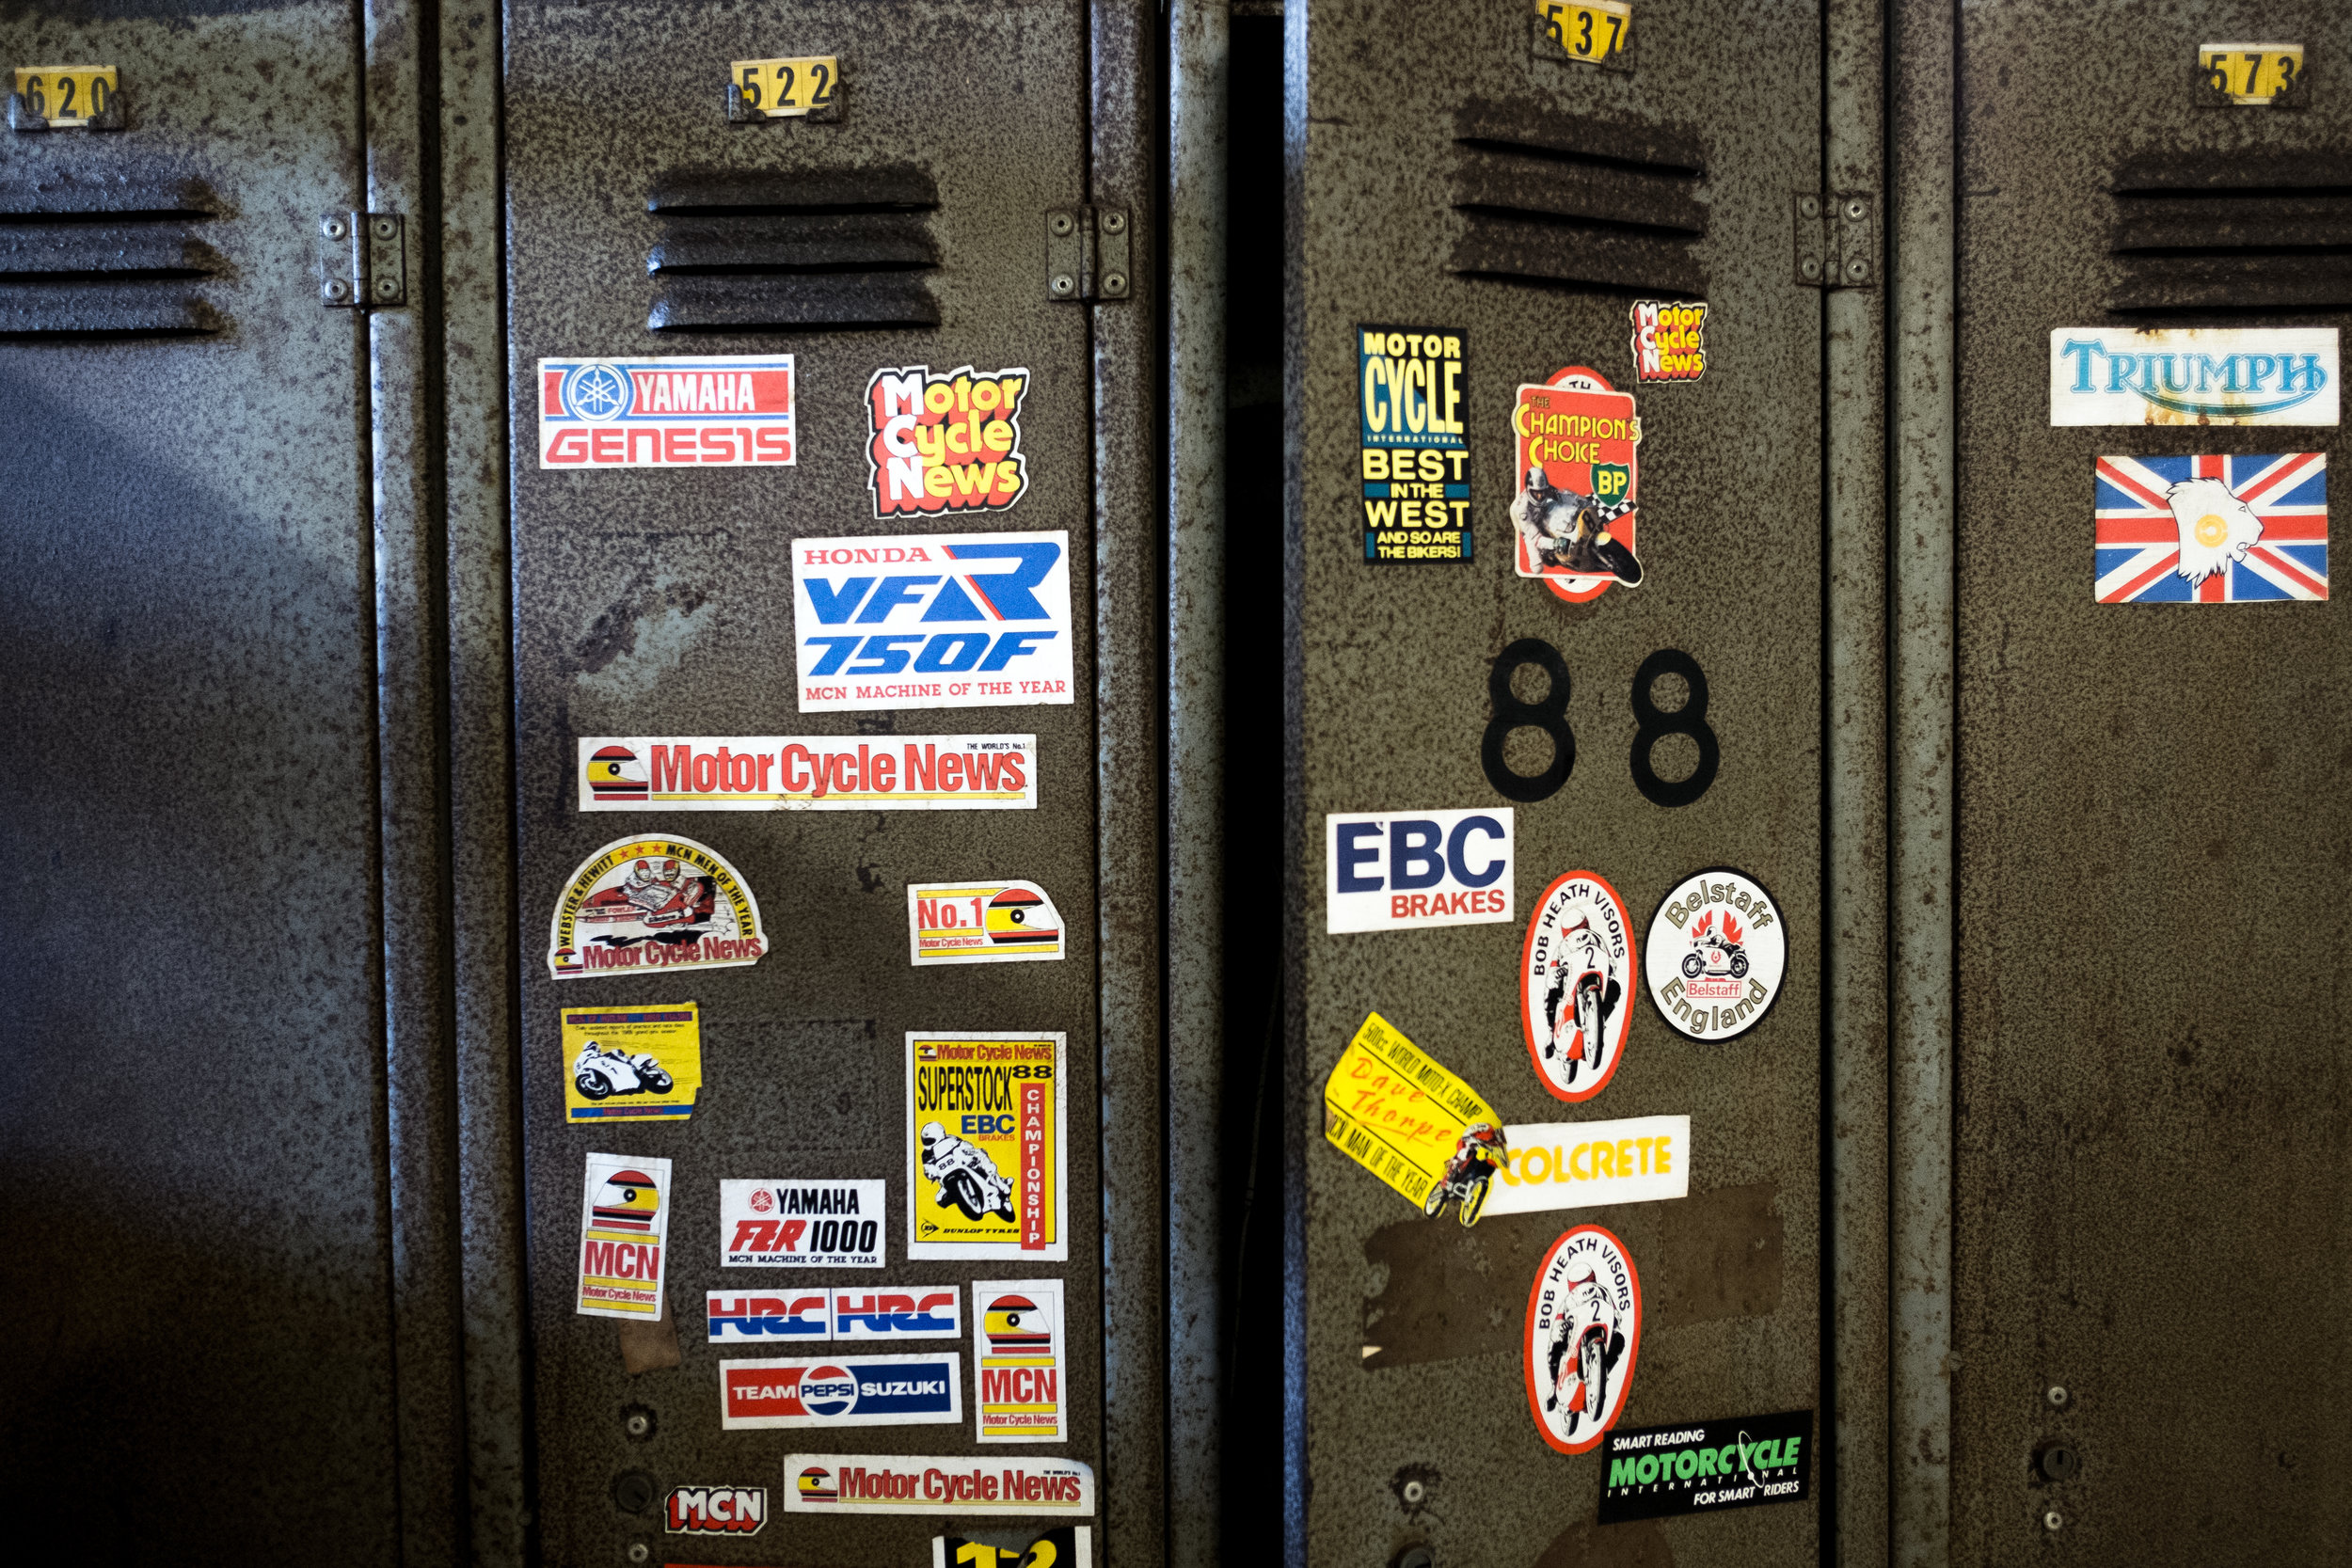 The personality of the miners shone through. A few bikers' lockers were grouped together, showing a shared love of machinery.